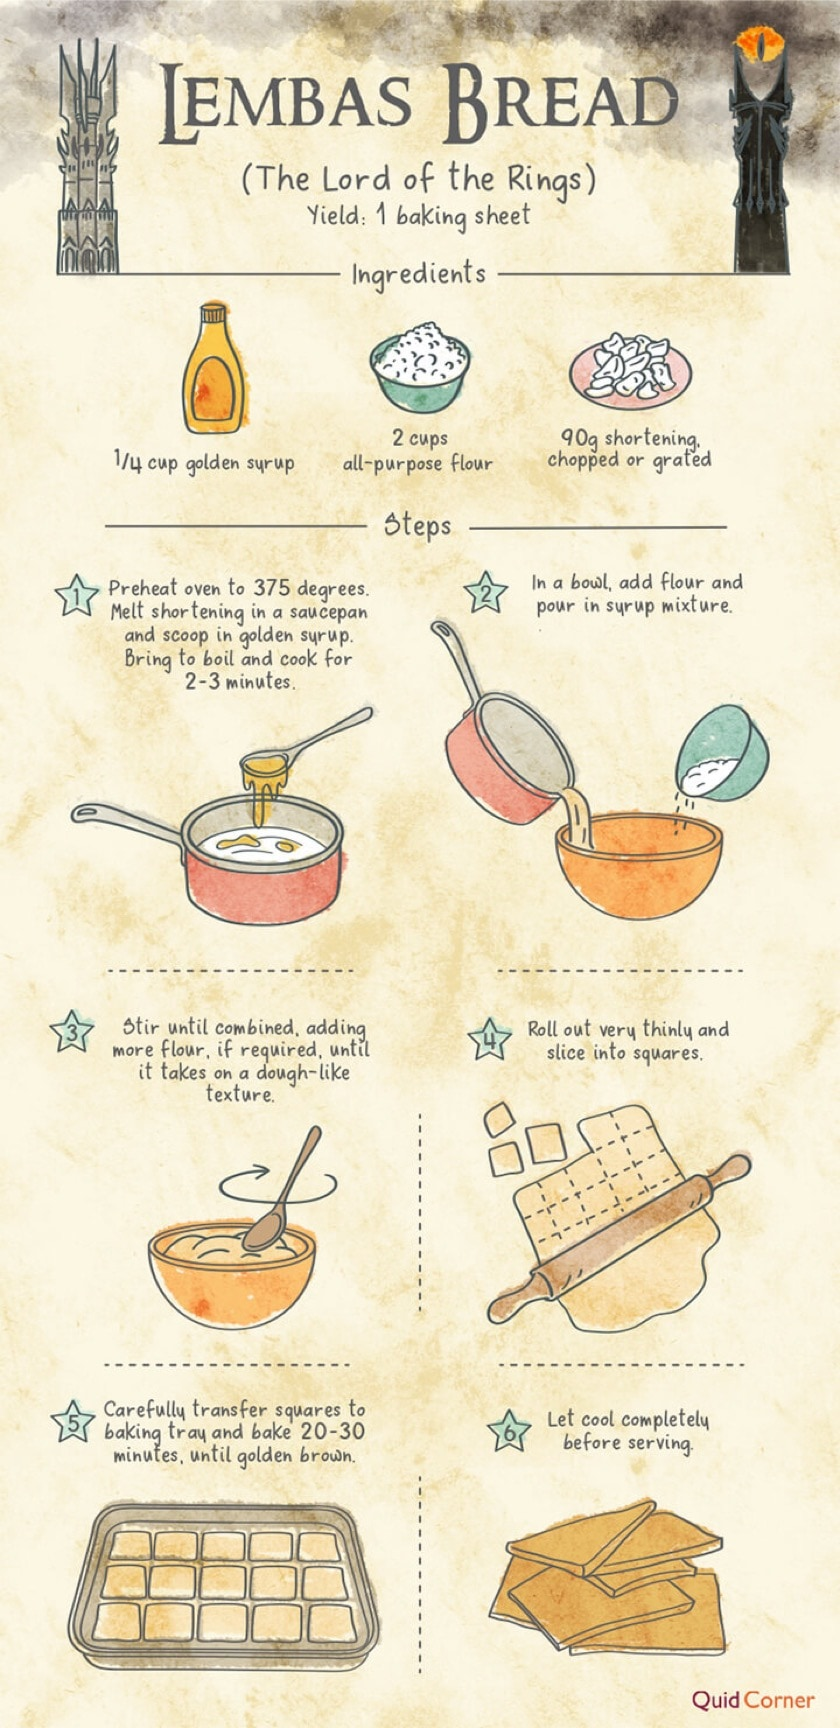 How to make lembas bread from The Lord of the Rings